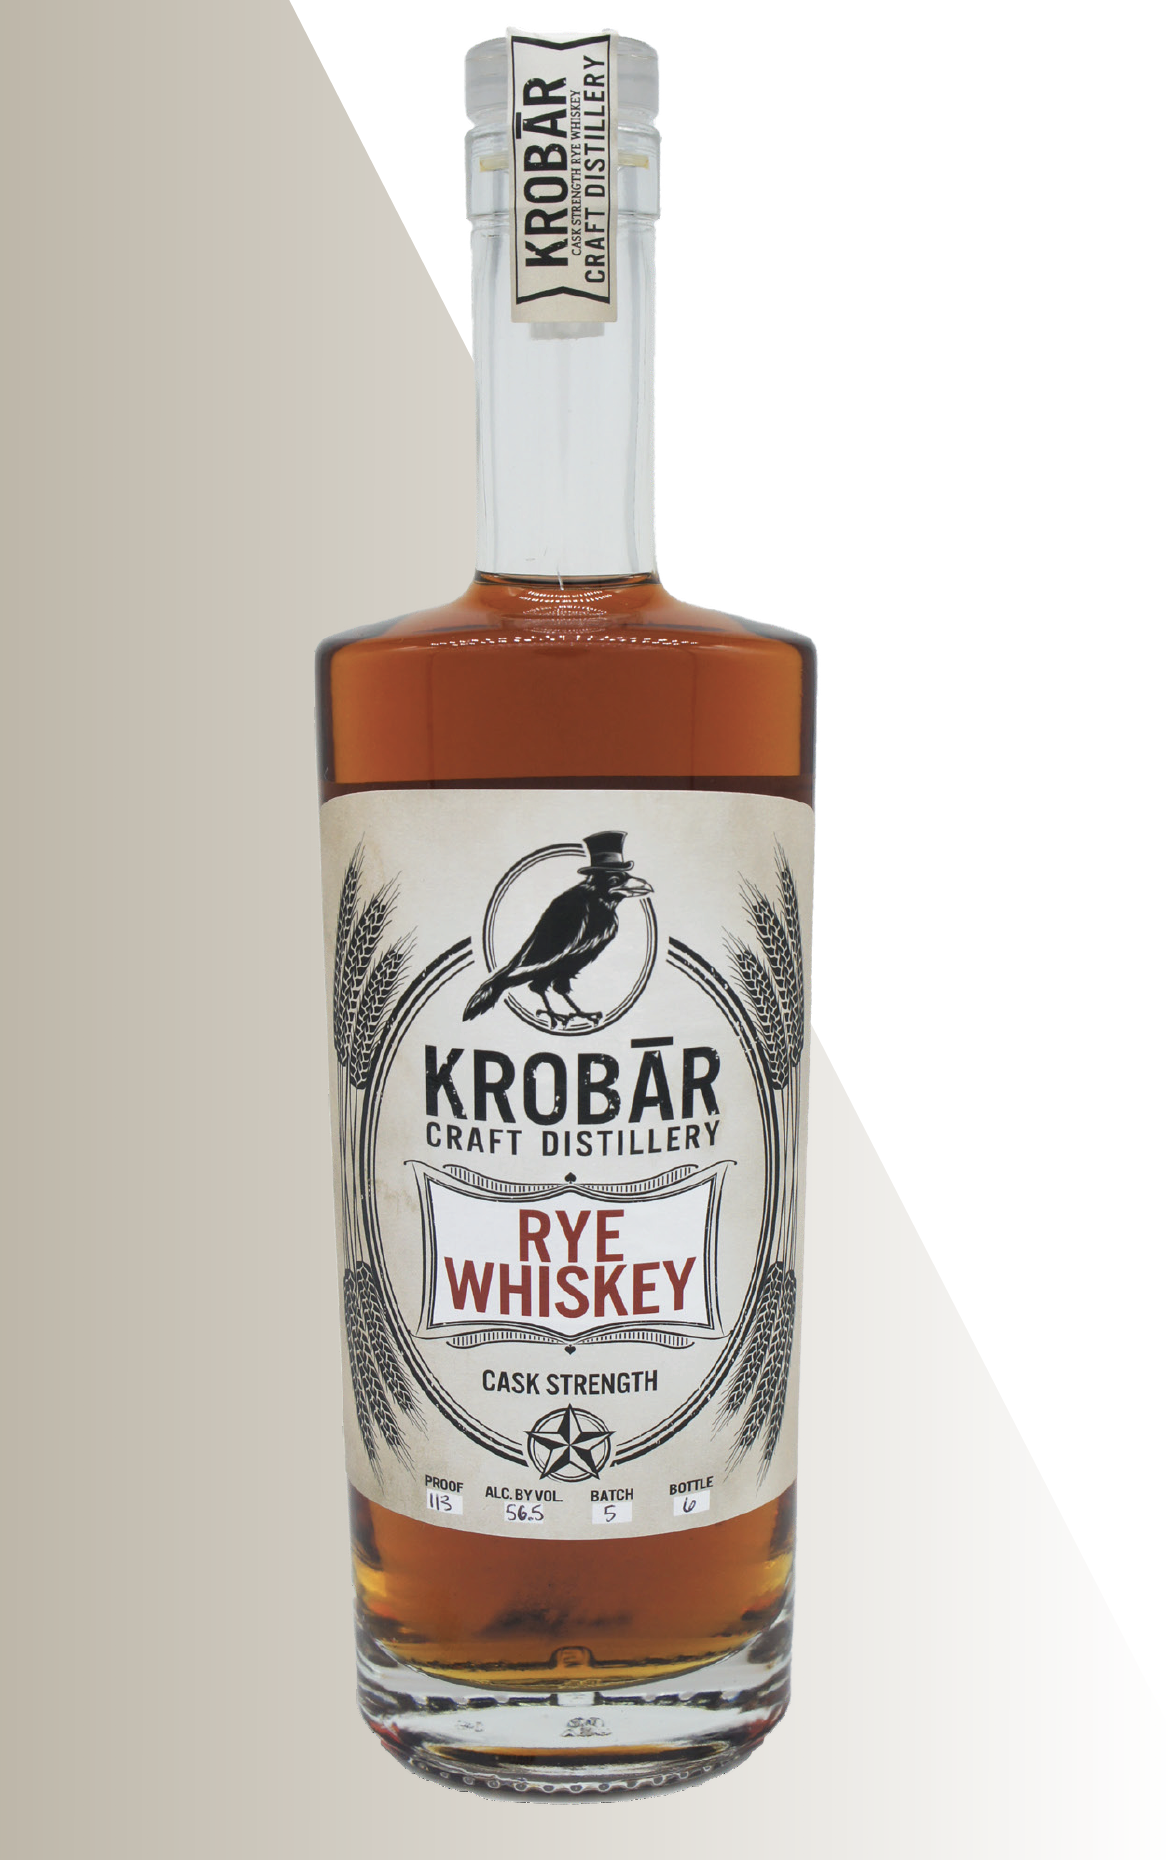 - This Cask Proof Whiskey boasts rich oak flavors that are sure to make your mouth tingle. Distilled once to 125 proof, we then place it in #3 and #4 char American Oak Barrels to rest for 2.5 years. Once the aging process had finished, we bottle the whiskey straight from the barrel without proofing it down.